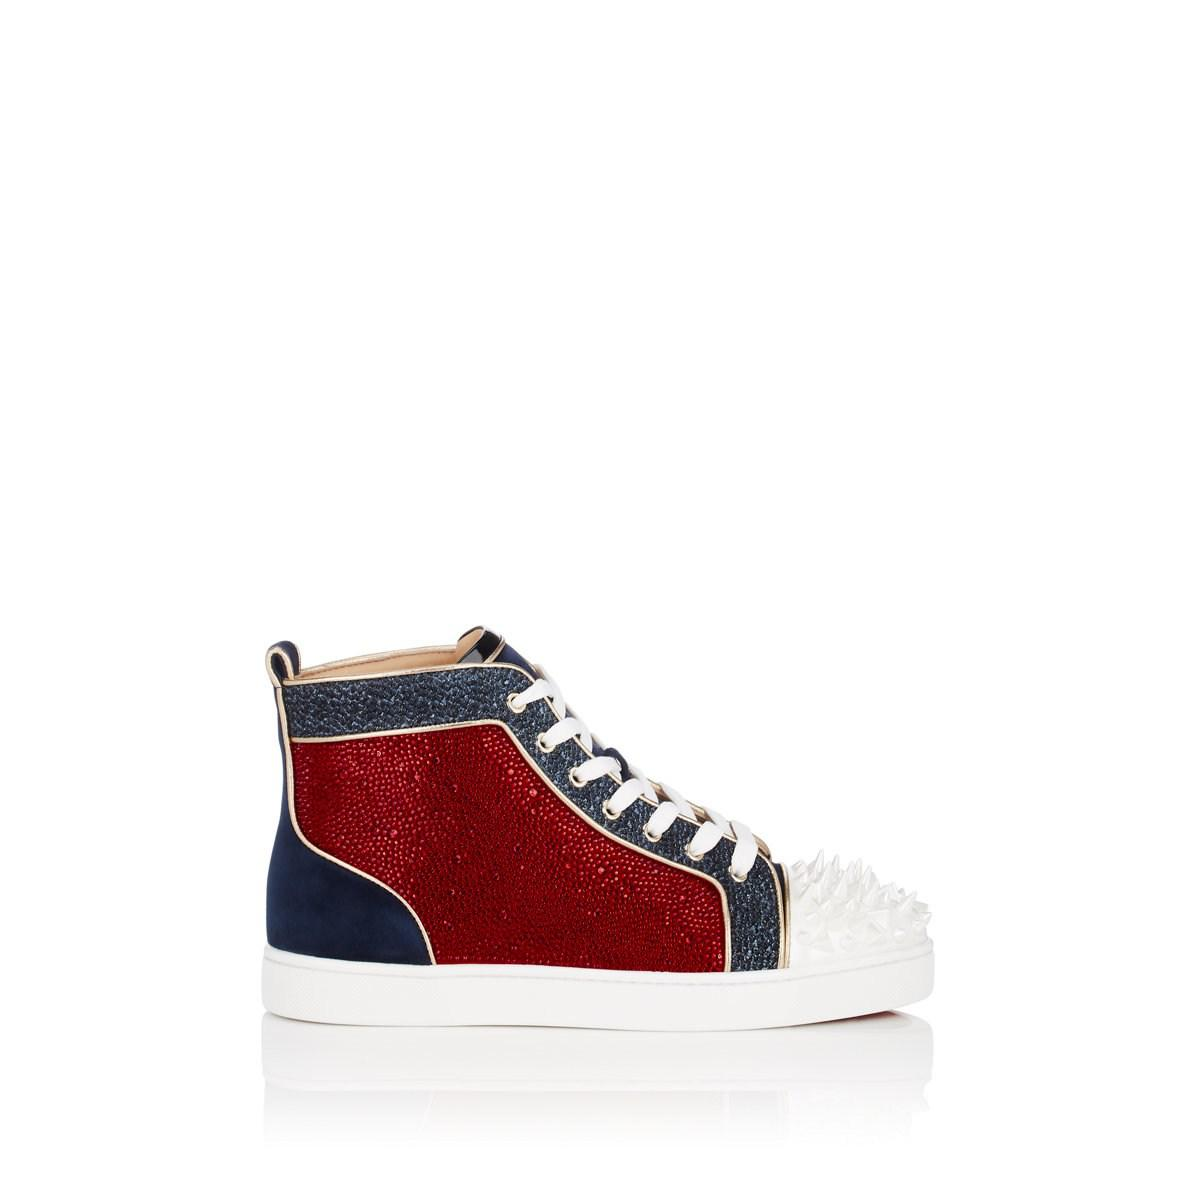 a3e05f1aec0 Christian Louboutin No Limit F18 in Red for Men - Lyst